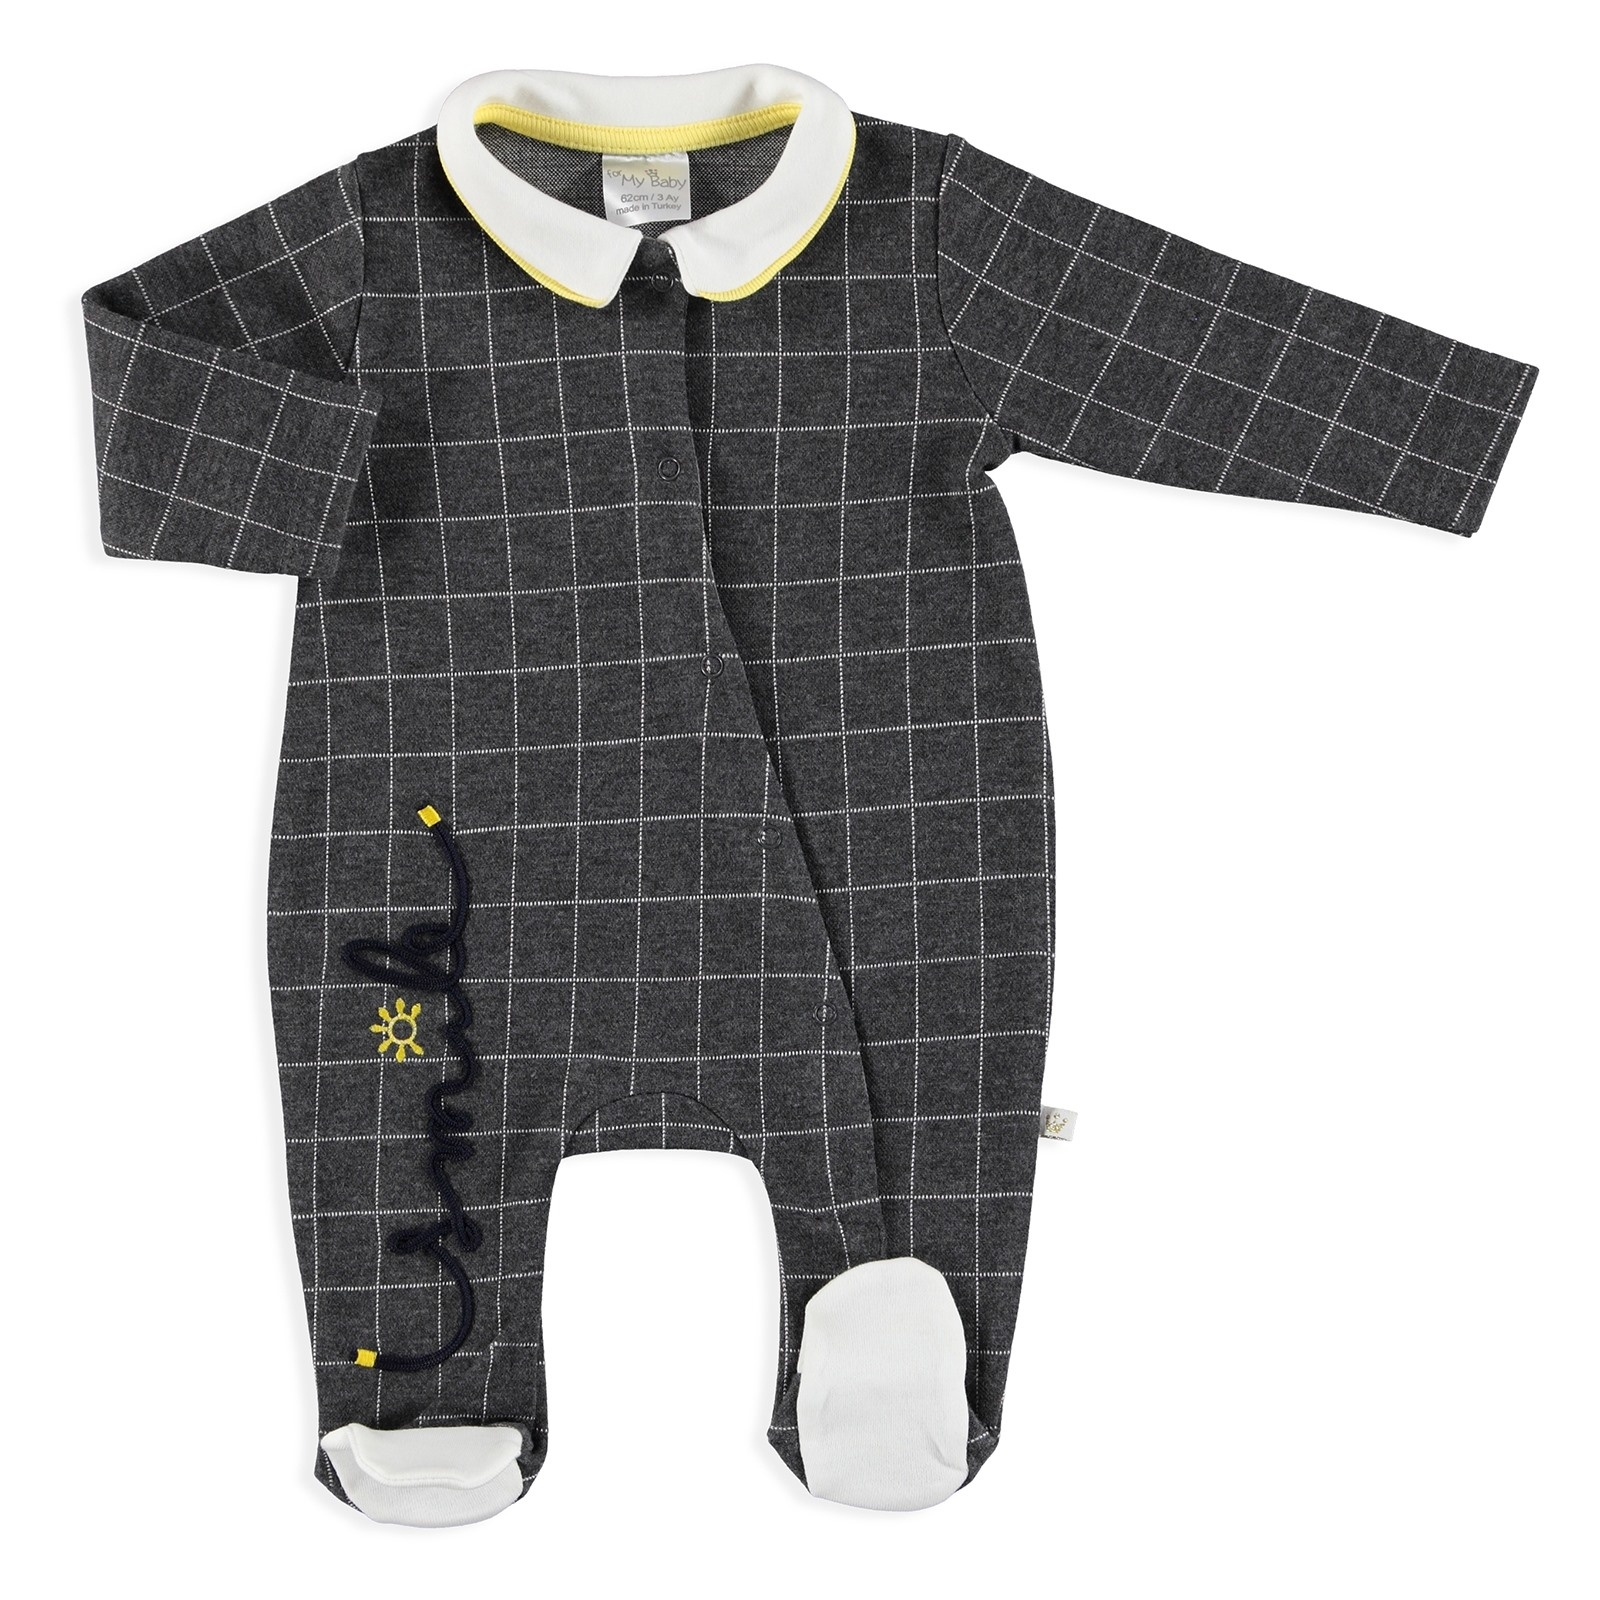 Ebebek For My Baby Winter Smile Polo Neck Zippered Footed Romper